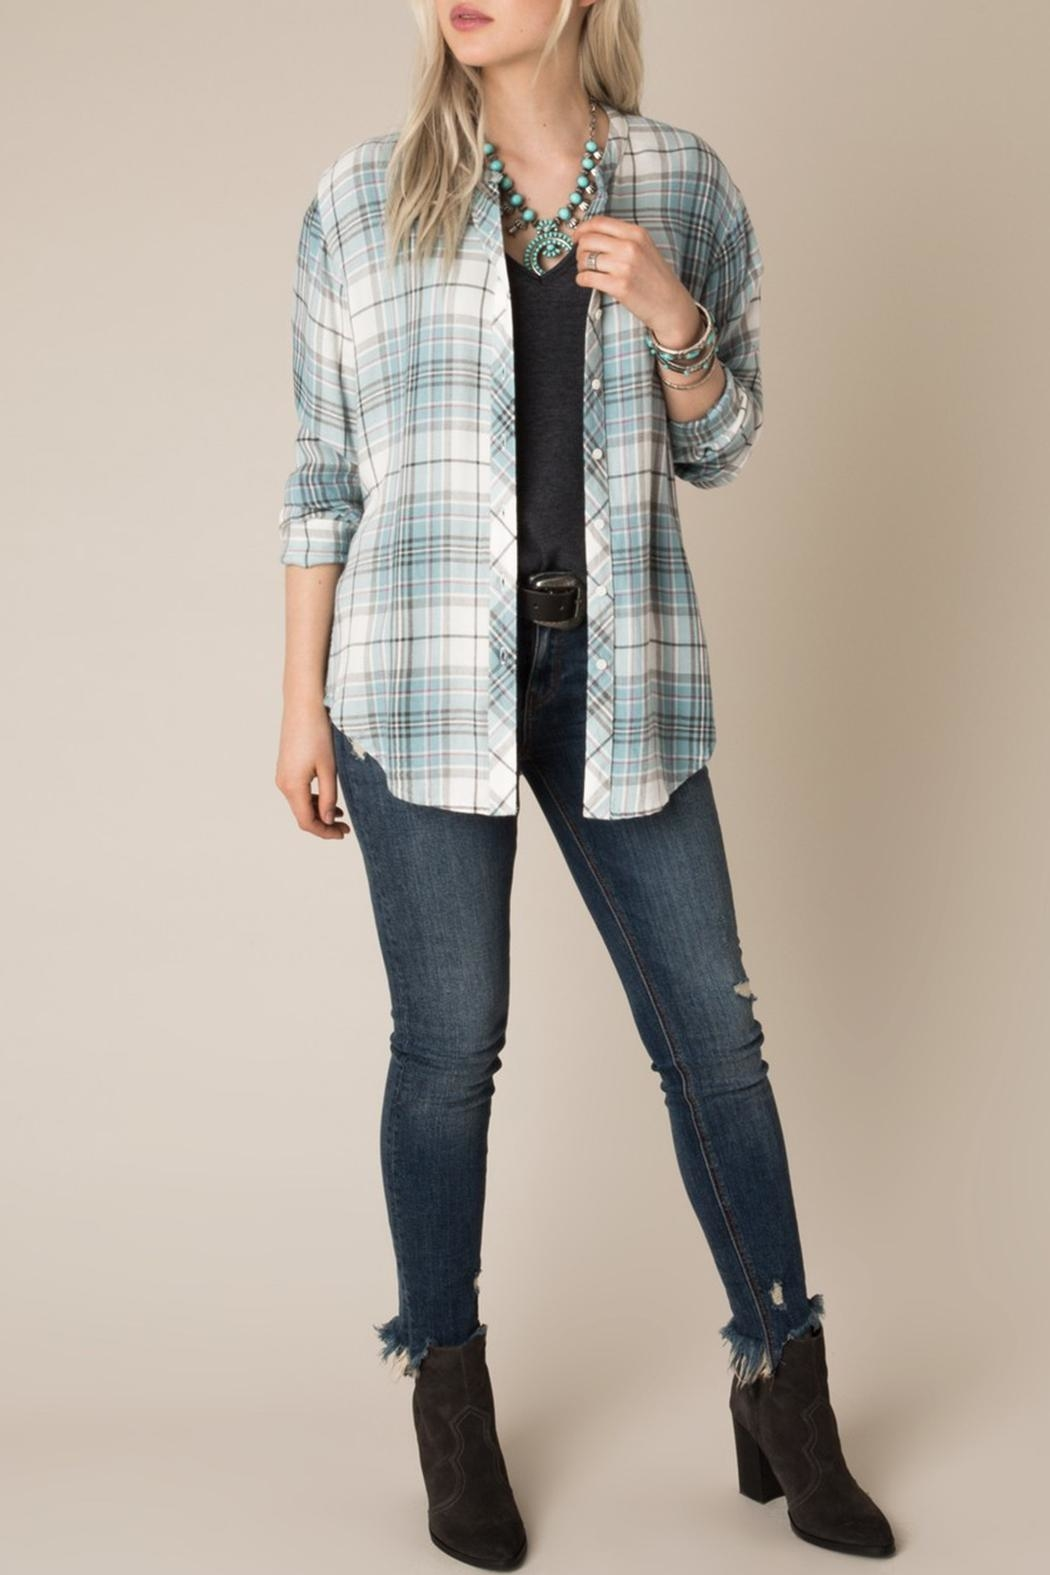 White Crow Checkmate Plaid Shirt - Back Cropped Image